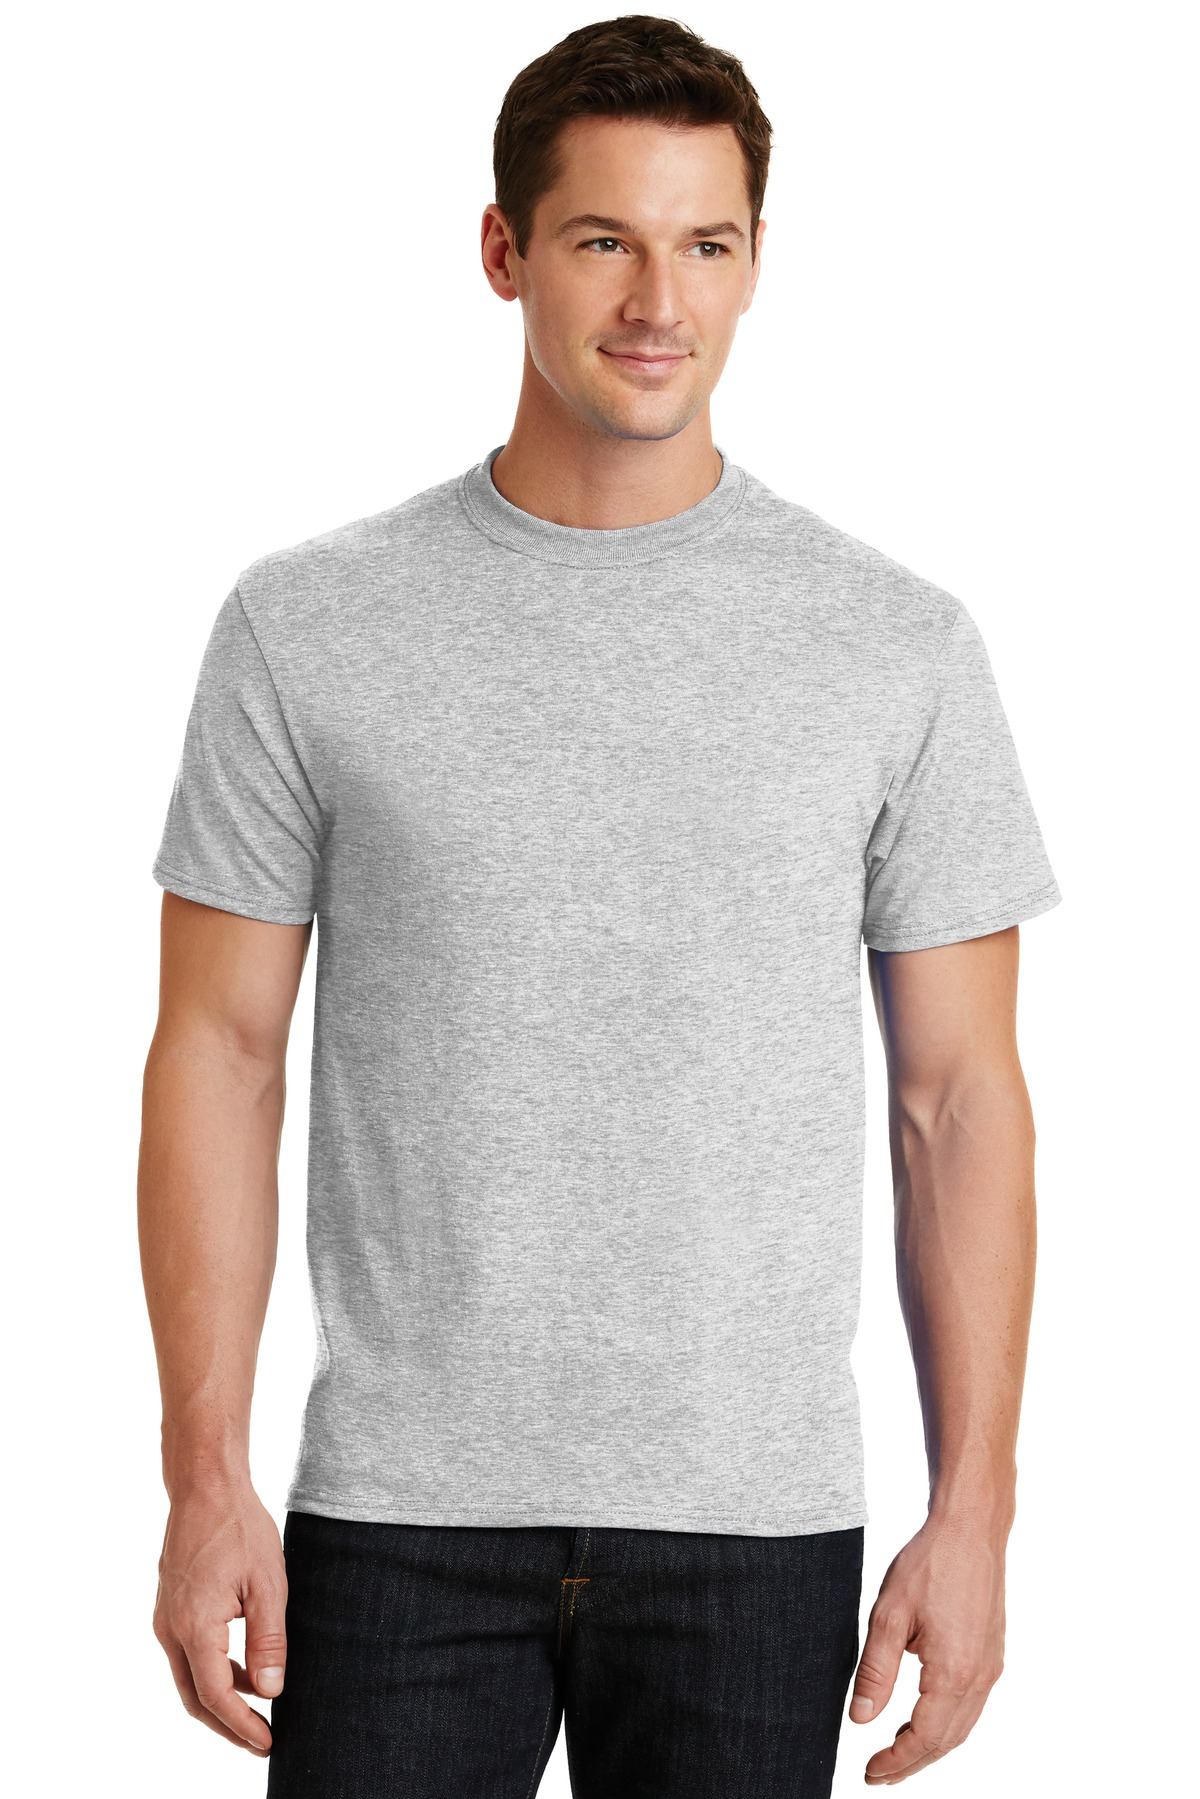 Port & Company ®  - Core Blend Tee.  PC55 - Ash